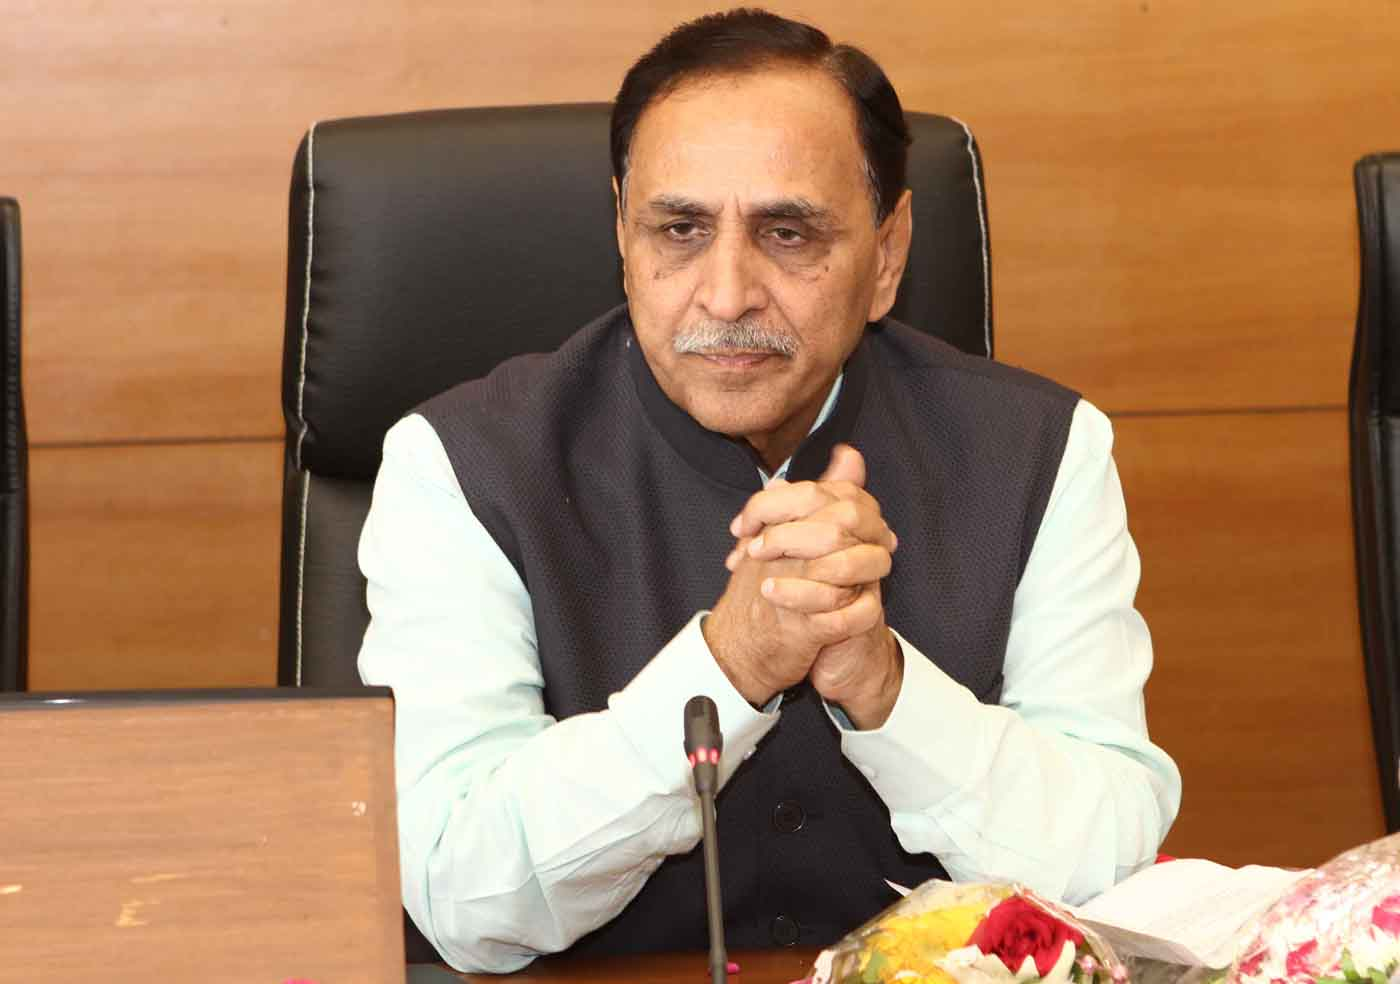 Chief Minister greets people in his message to people on Gujarat Foundation Day